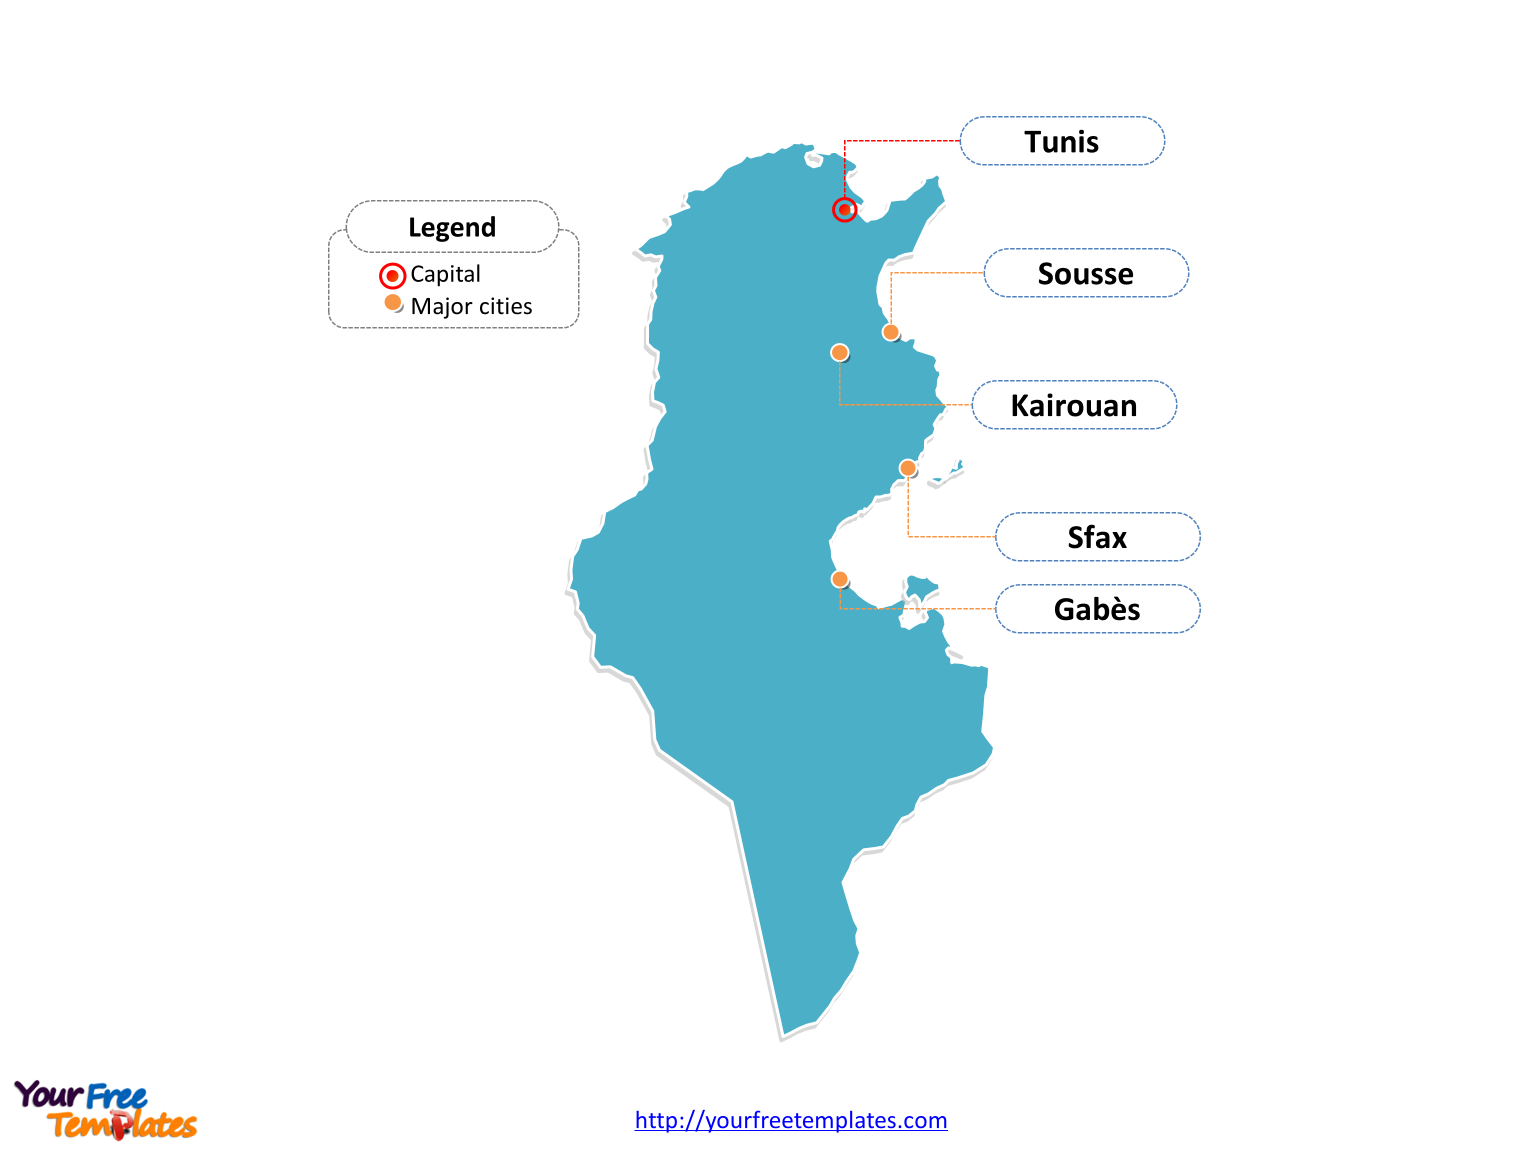 Free Tunisia Editable Map Free PowerPoint Templates